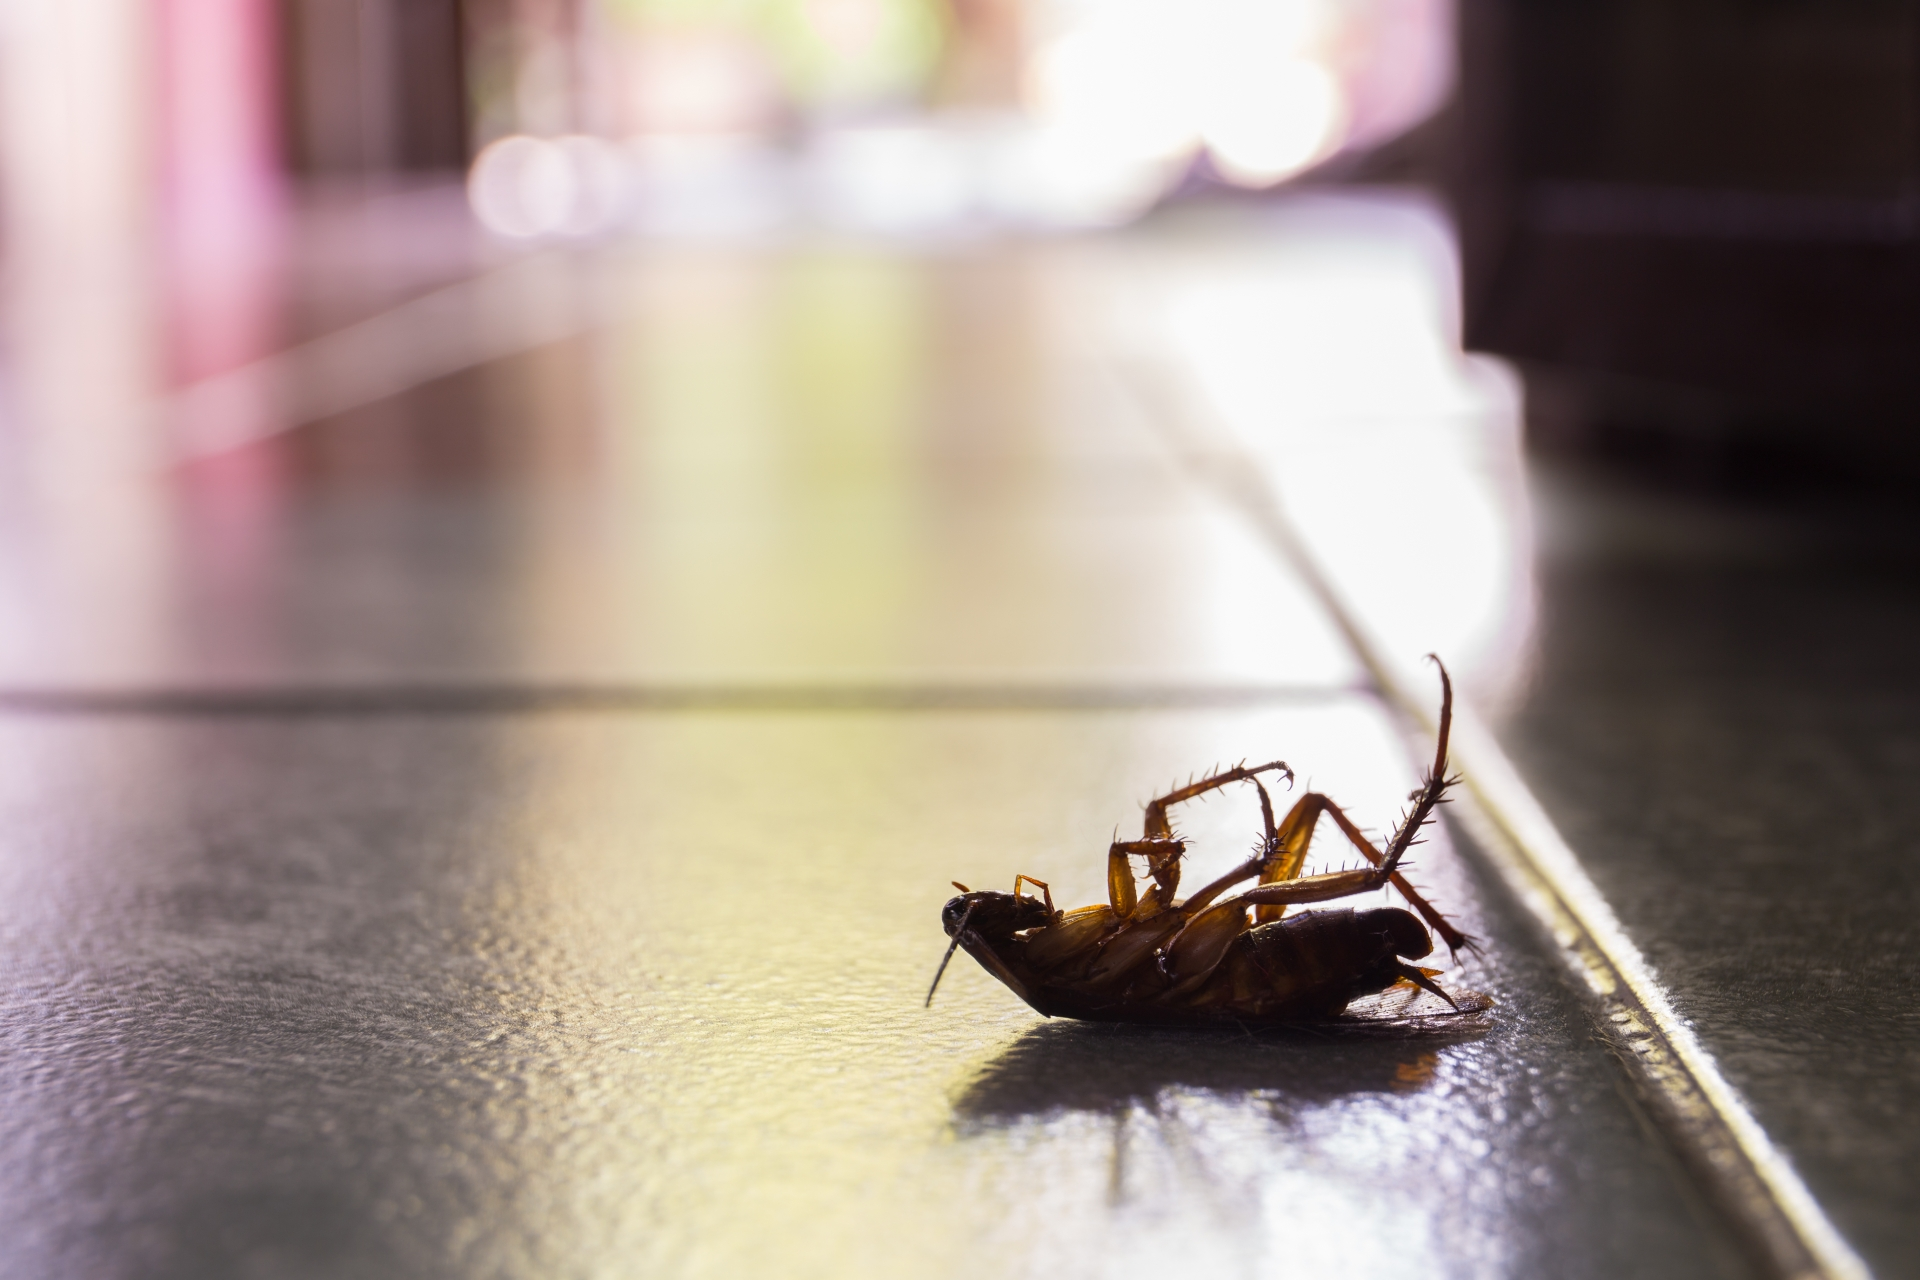 Cockroach Control, Pest Control in Winchmore Hill, N21. Call Now 020 8166 9746